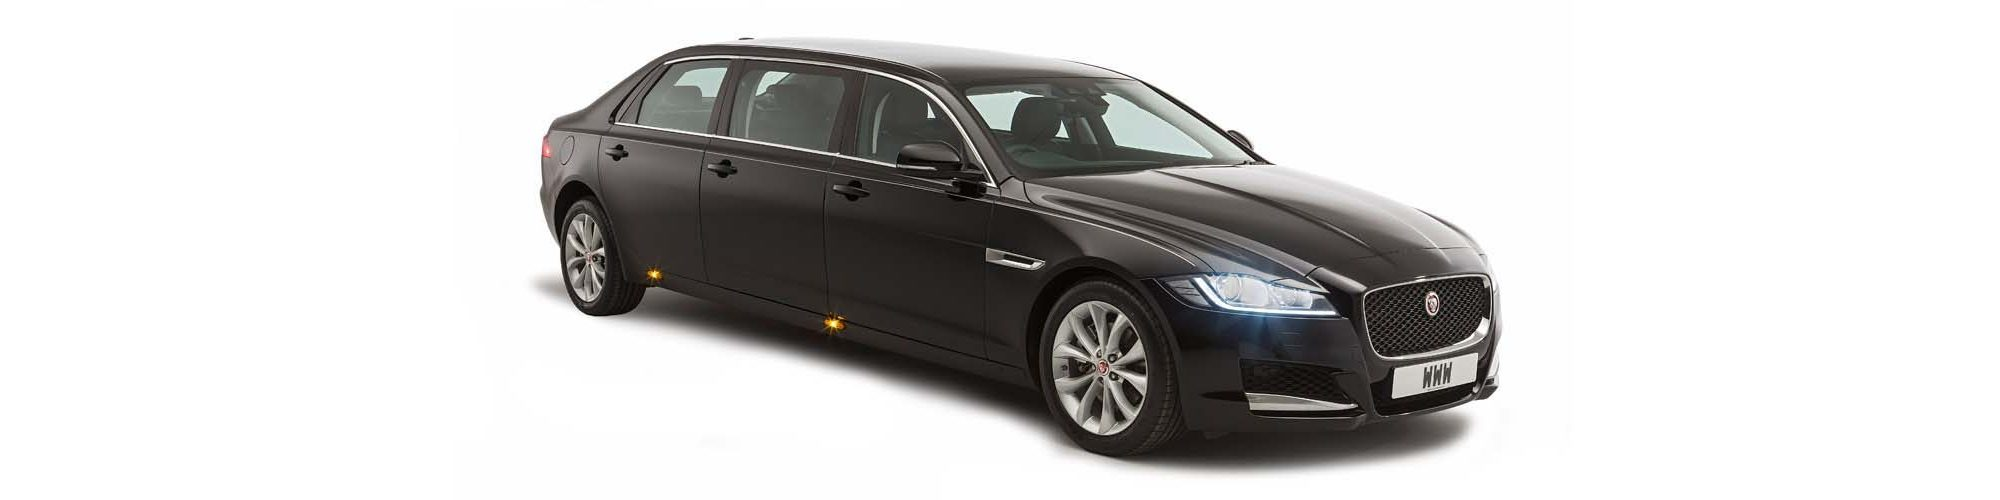 Wilcox 6 Door Limousine based on Jaguar XF